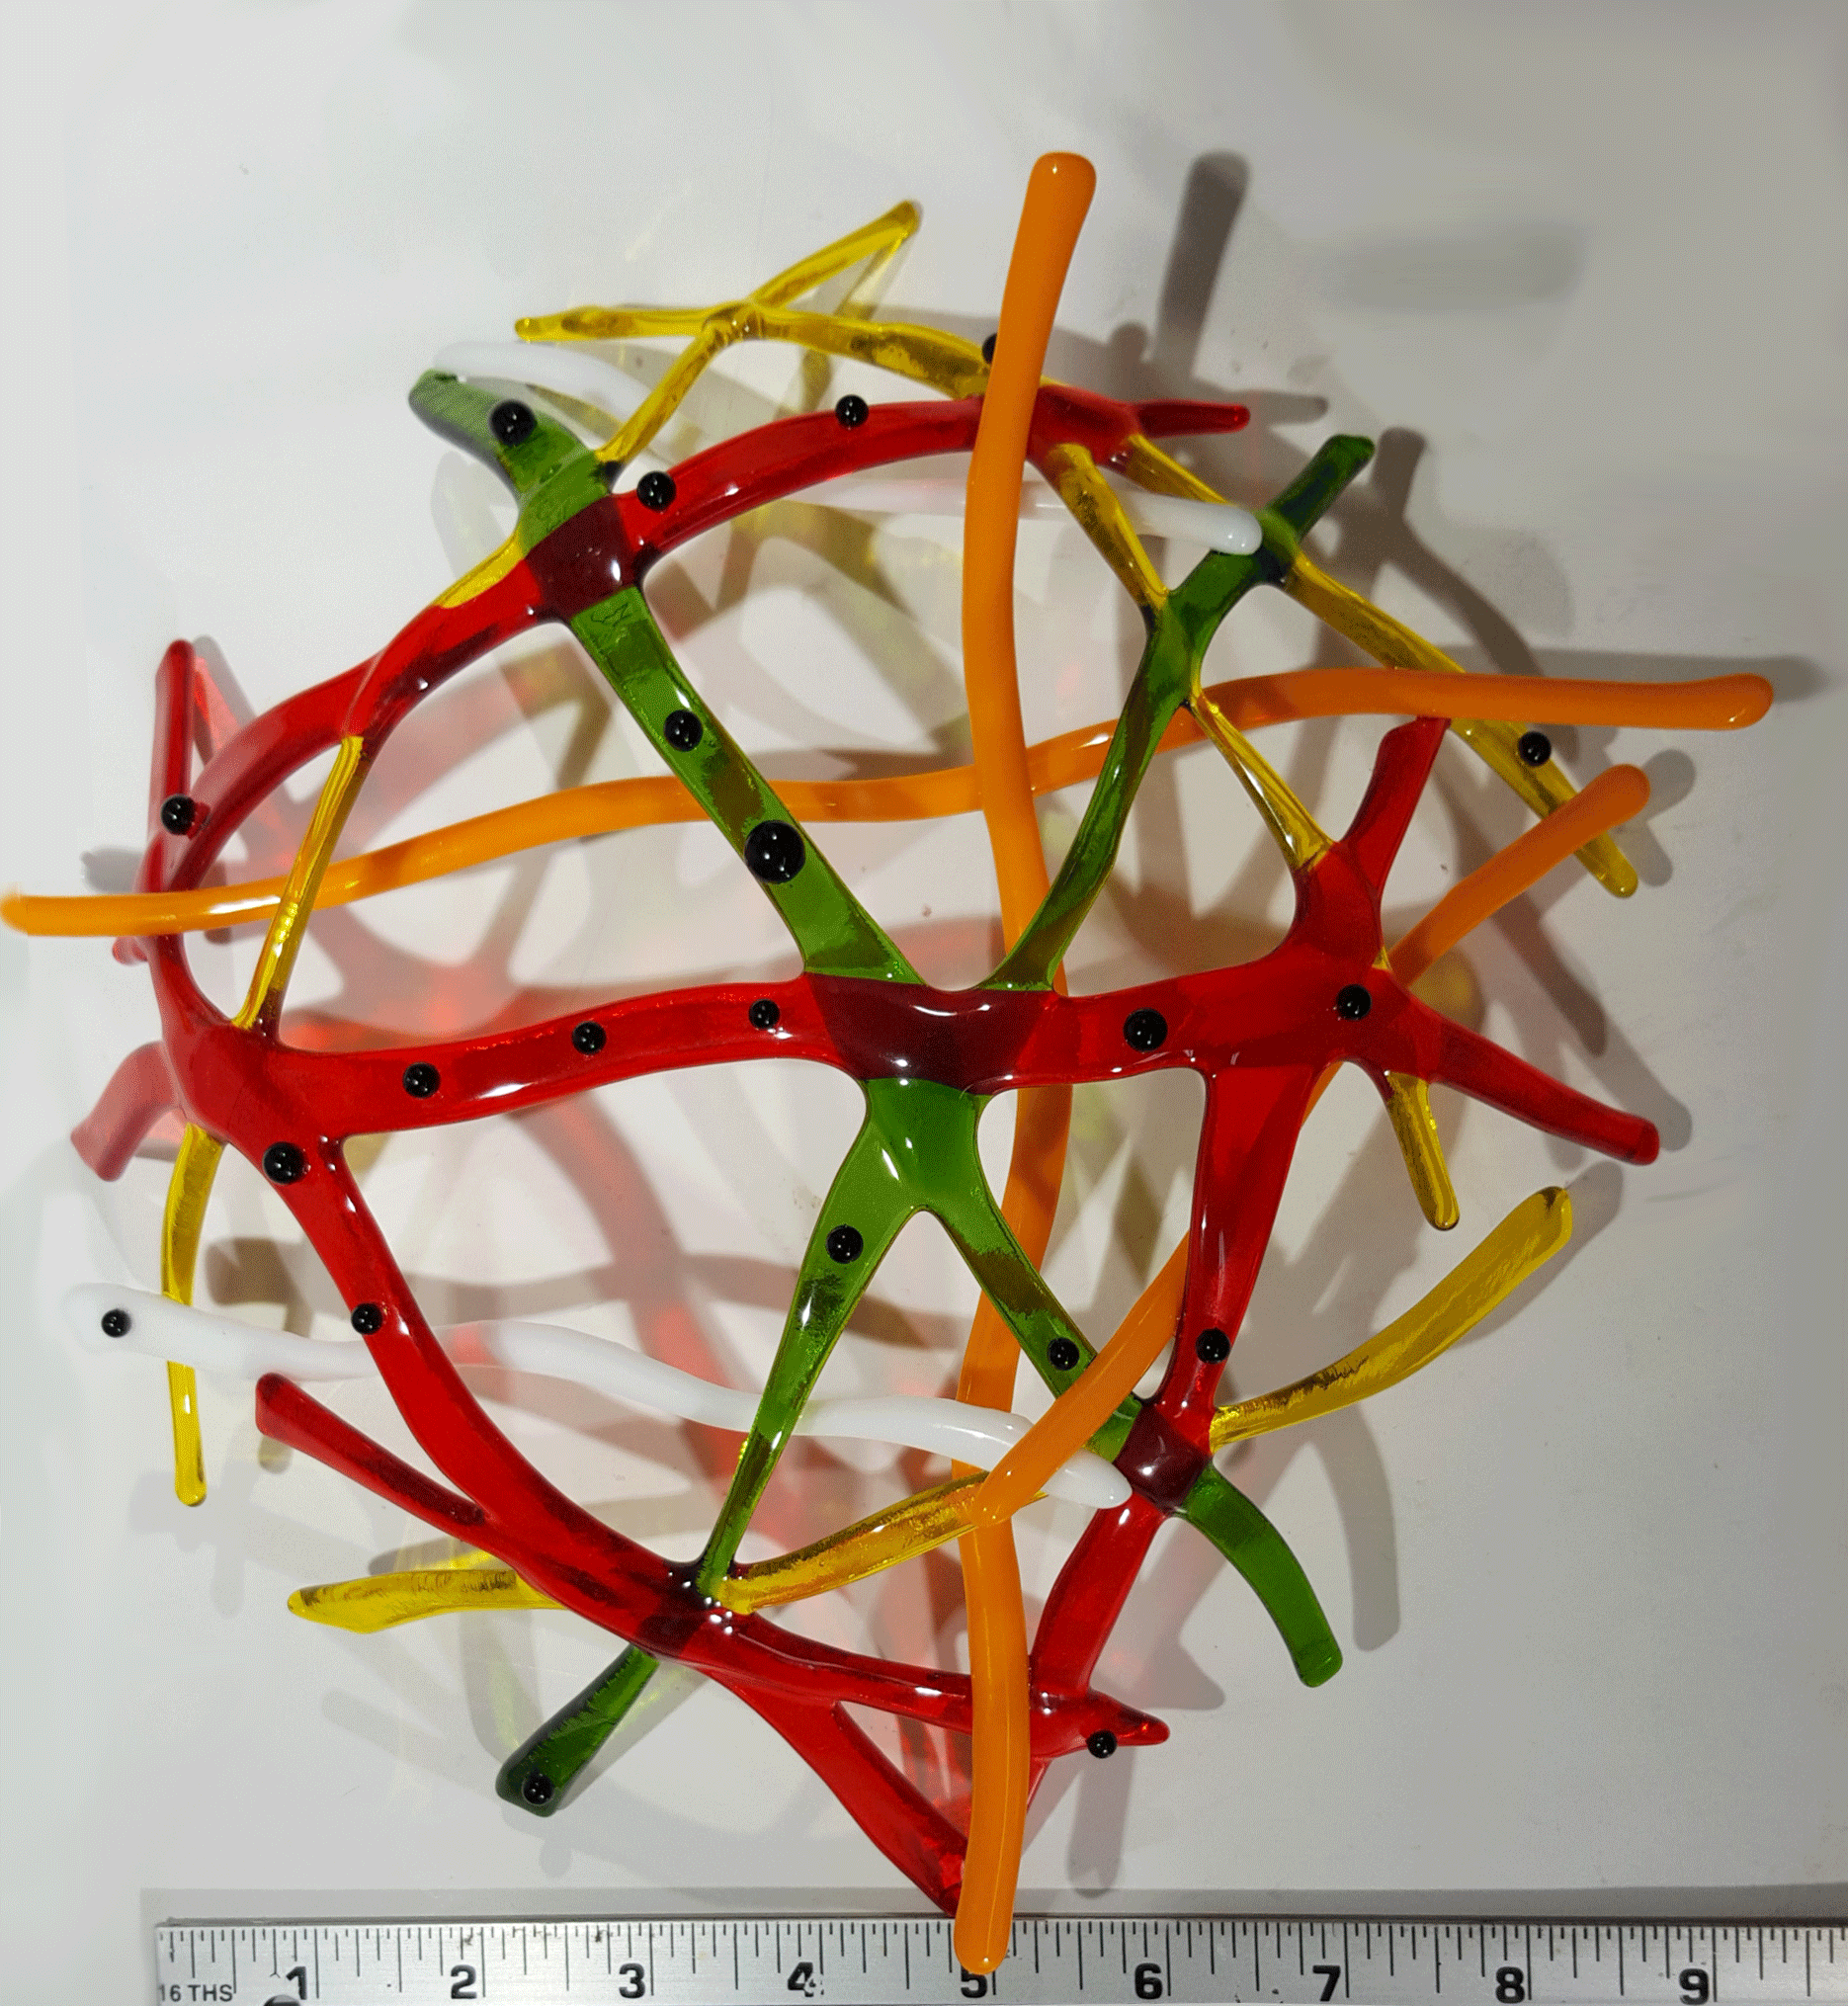 a-Organic-Variation-Bullseye-Green,-red,-yellow-and-orange--with-black--Goo-Gaas